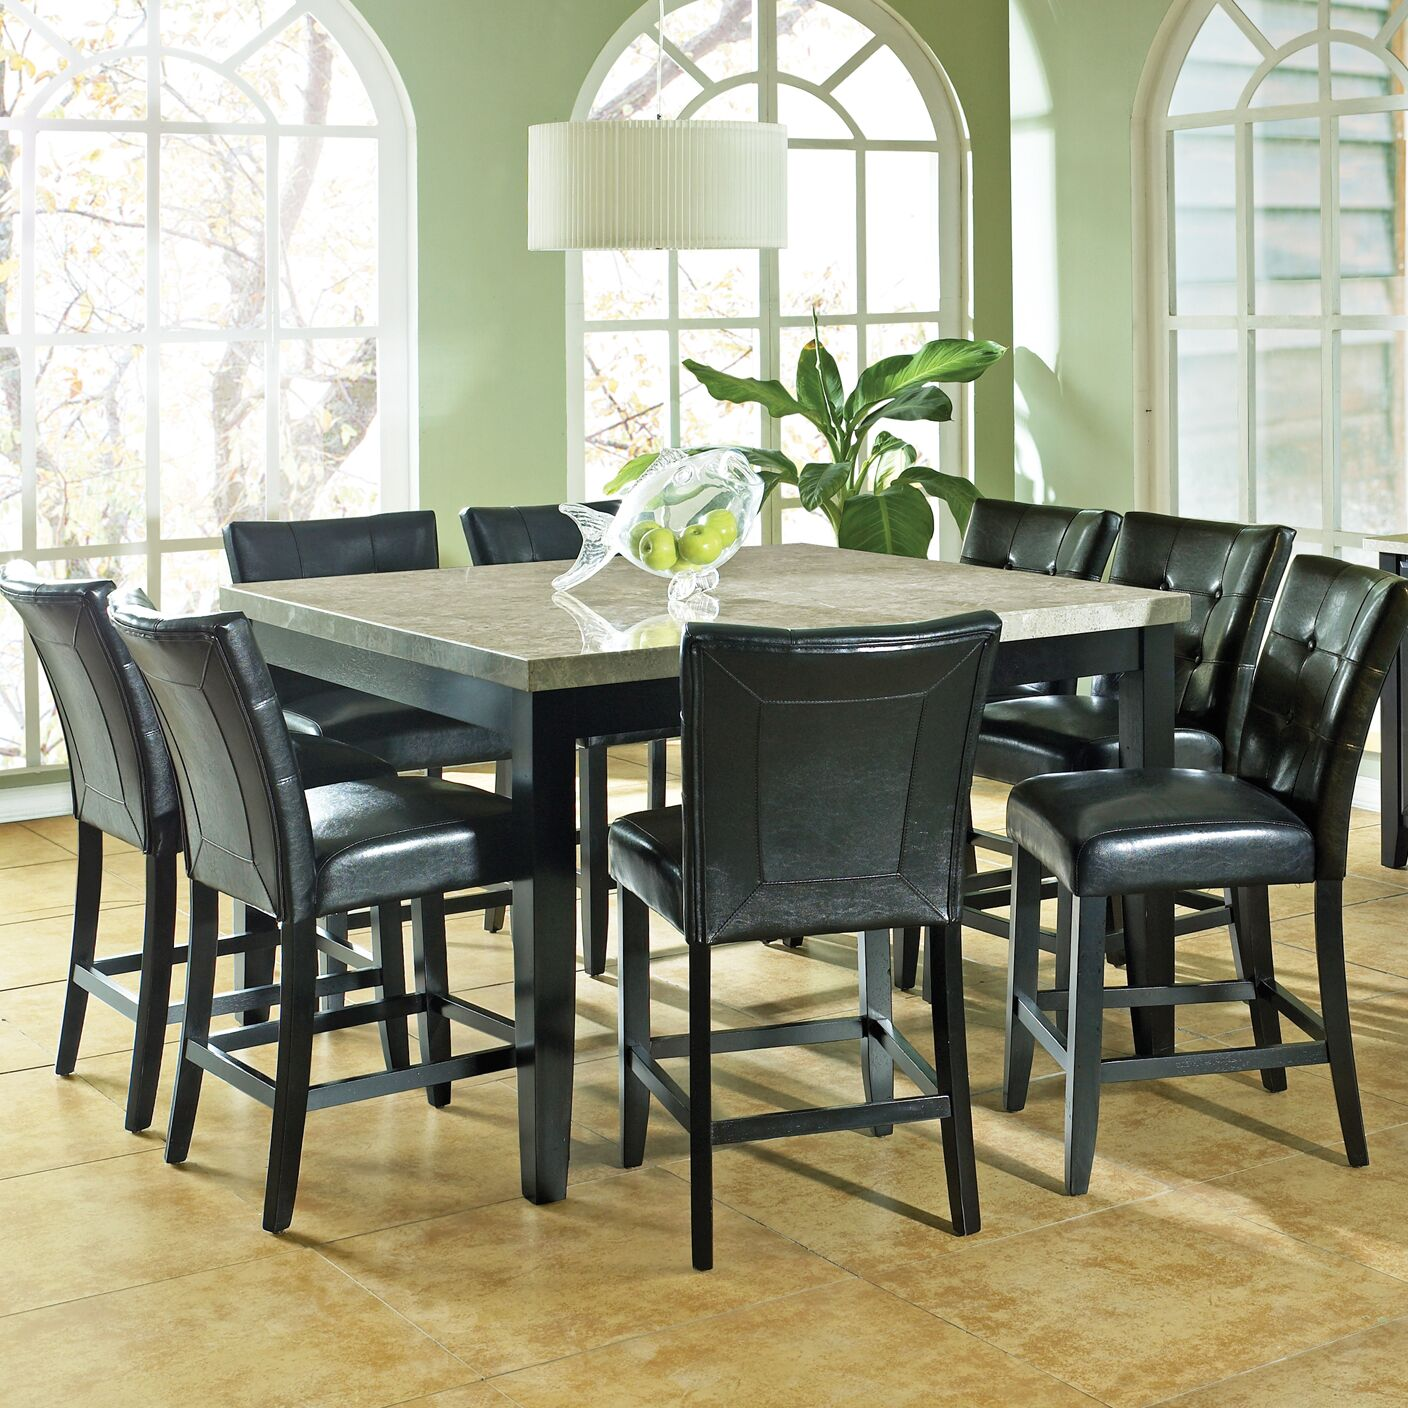 Dining Table Sets Chloe 9 Piece Counter Height Dining Set